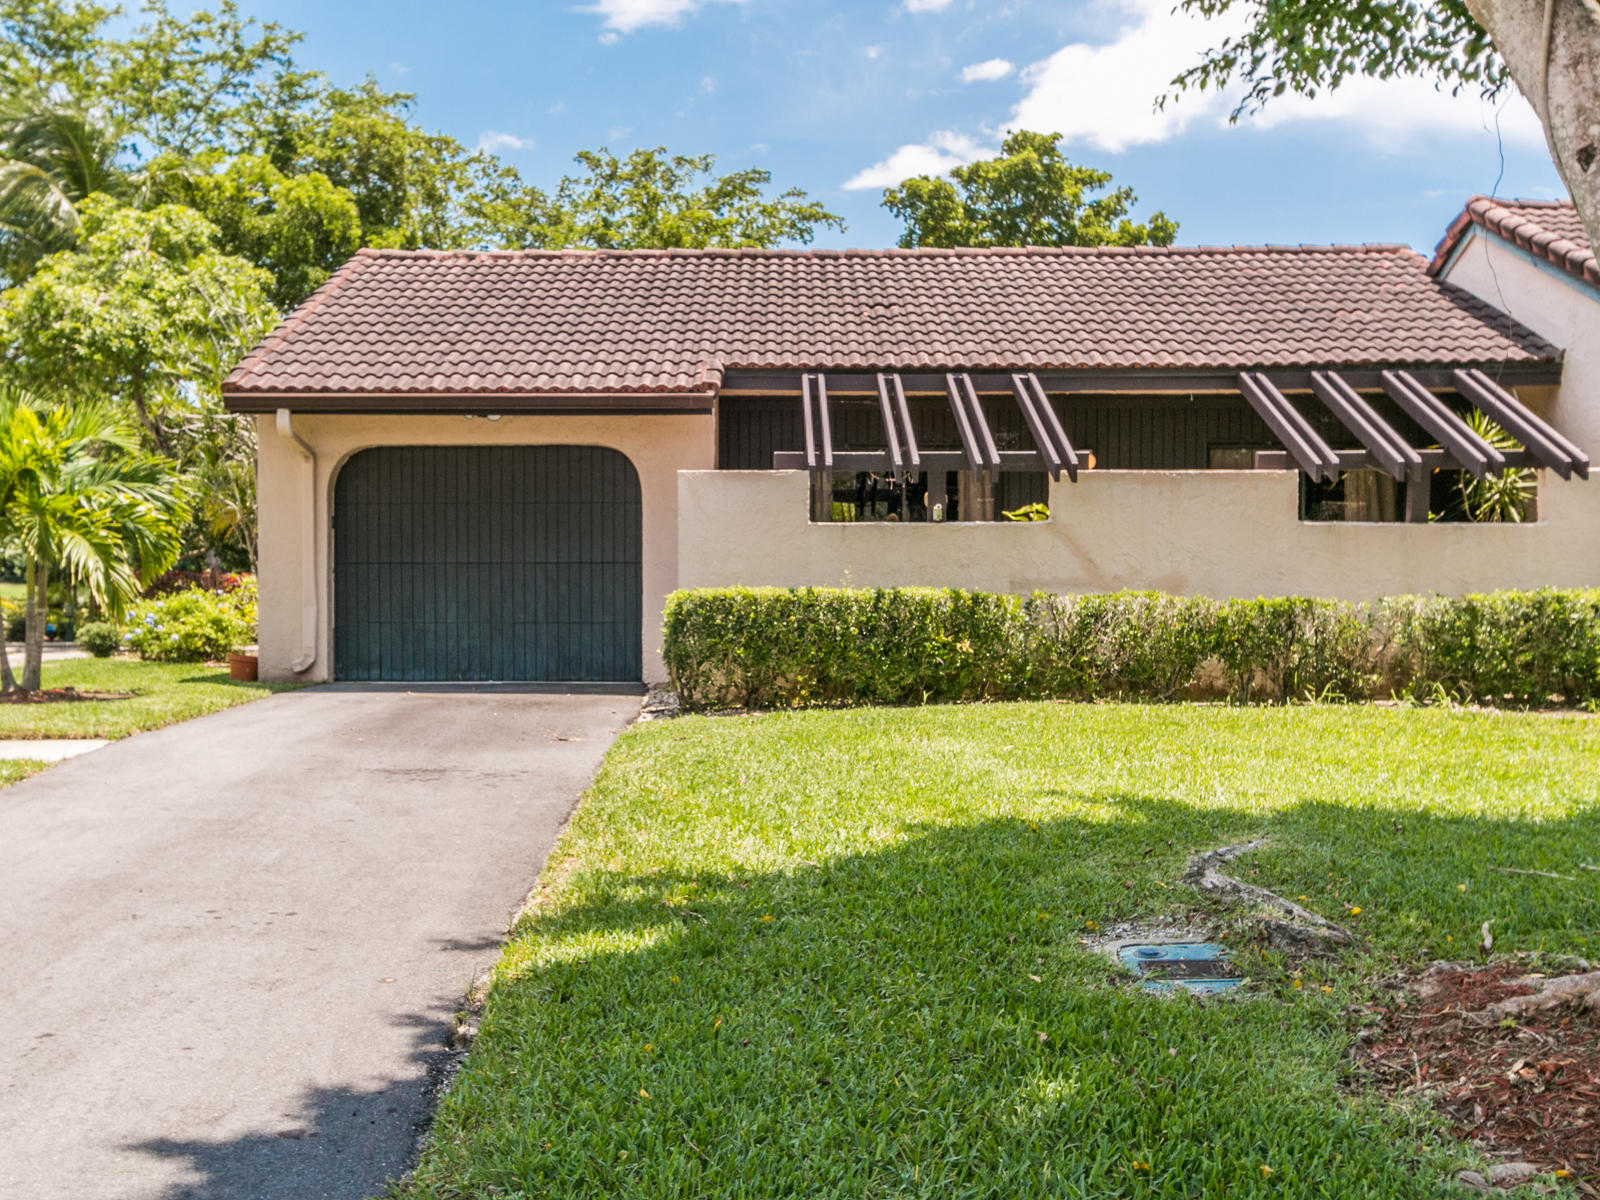 Photo of 9302 Vista Del Lago #5a, Boca Raton, FL 33428